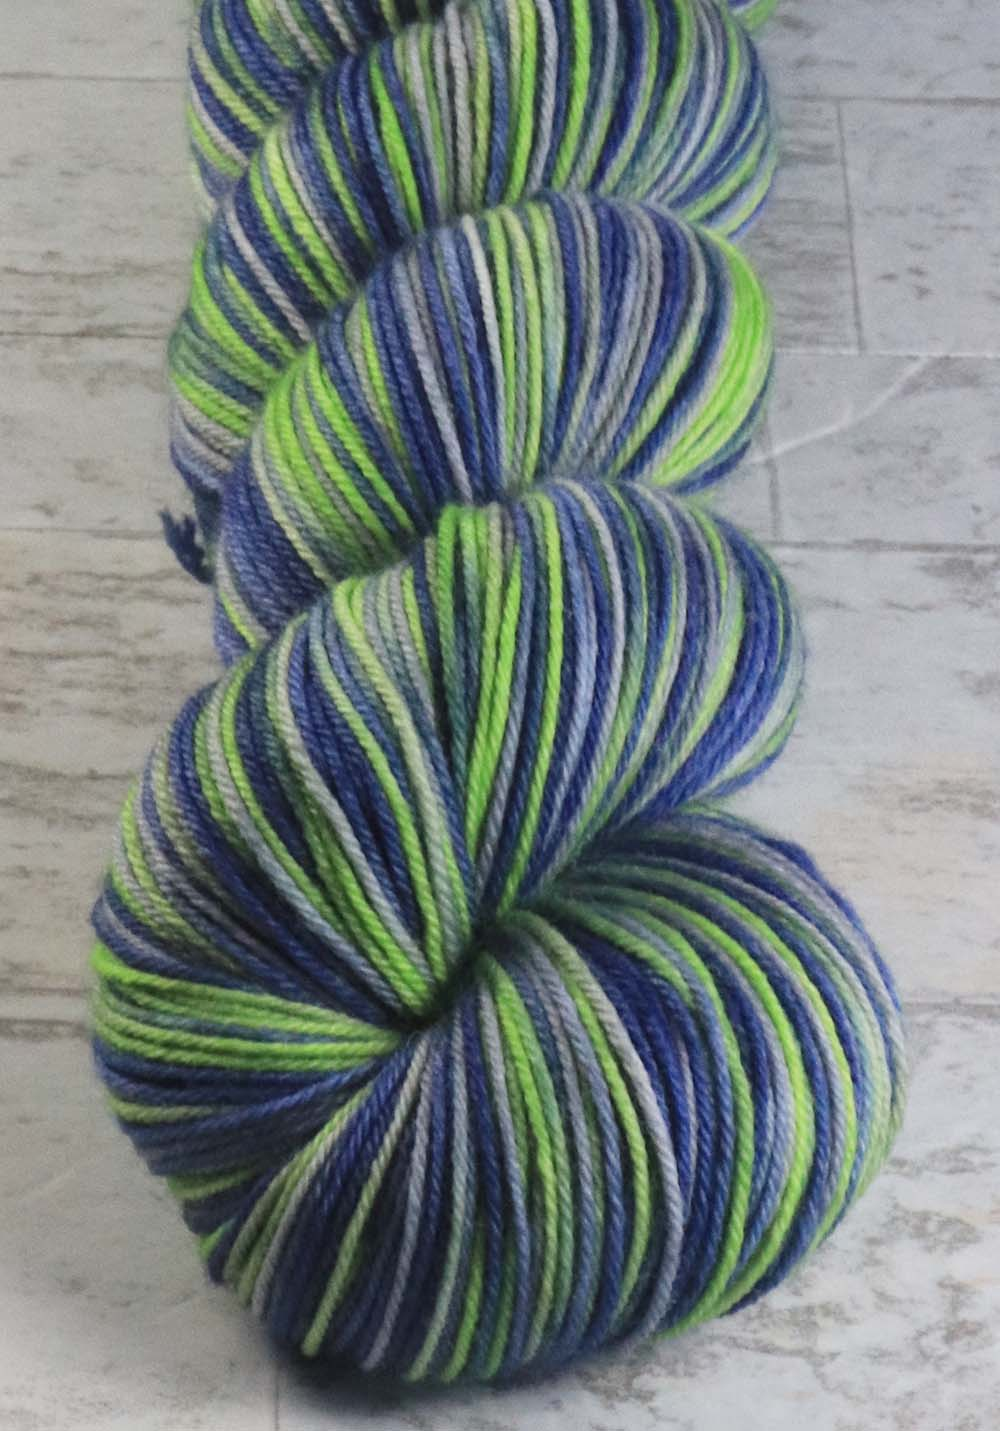 BLUE - GREEN - GRAY: SW Merino-Nylon - Hand dyed Variegated - sport team sock yarn - SEATTLE